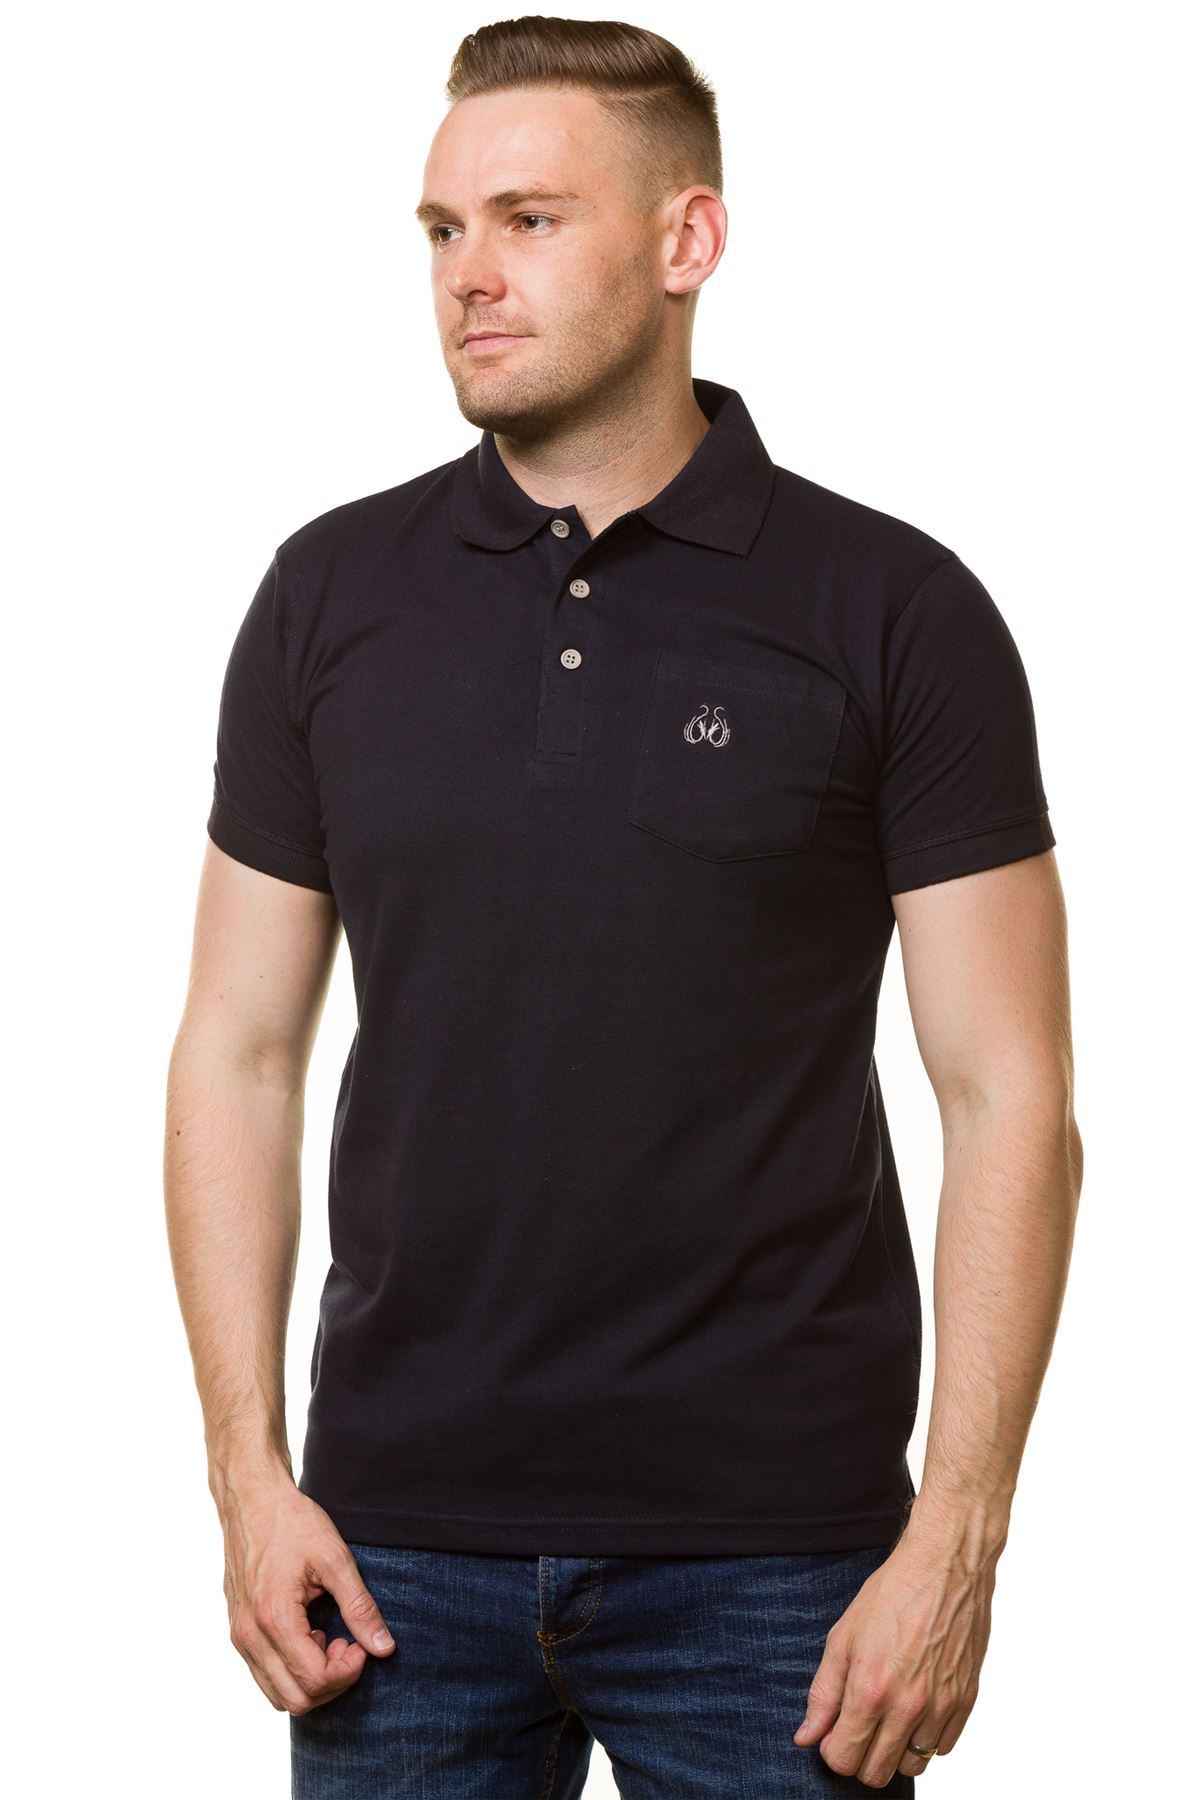 Men s t shirts cotton regular fit branded plain polo for Branded polo t shirts